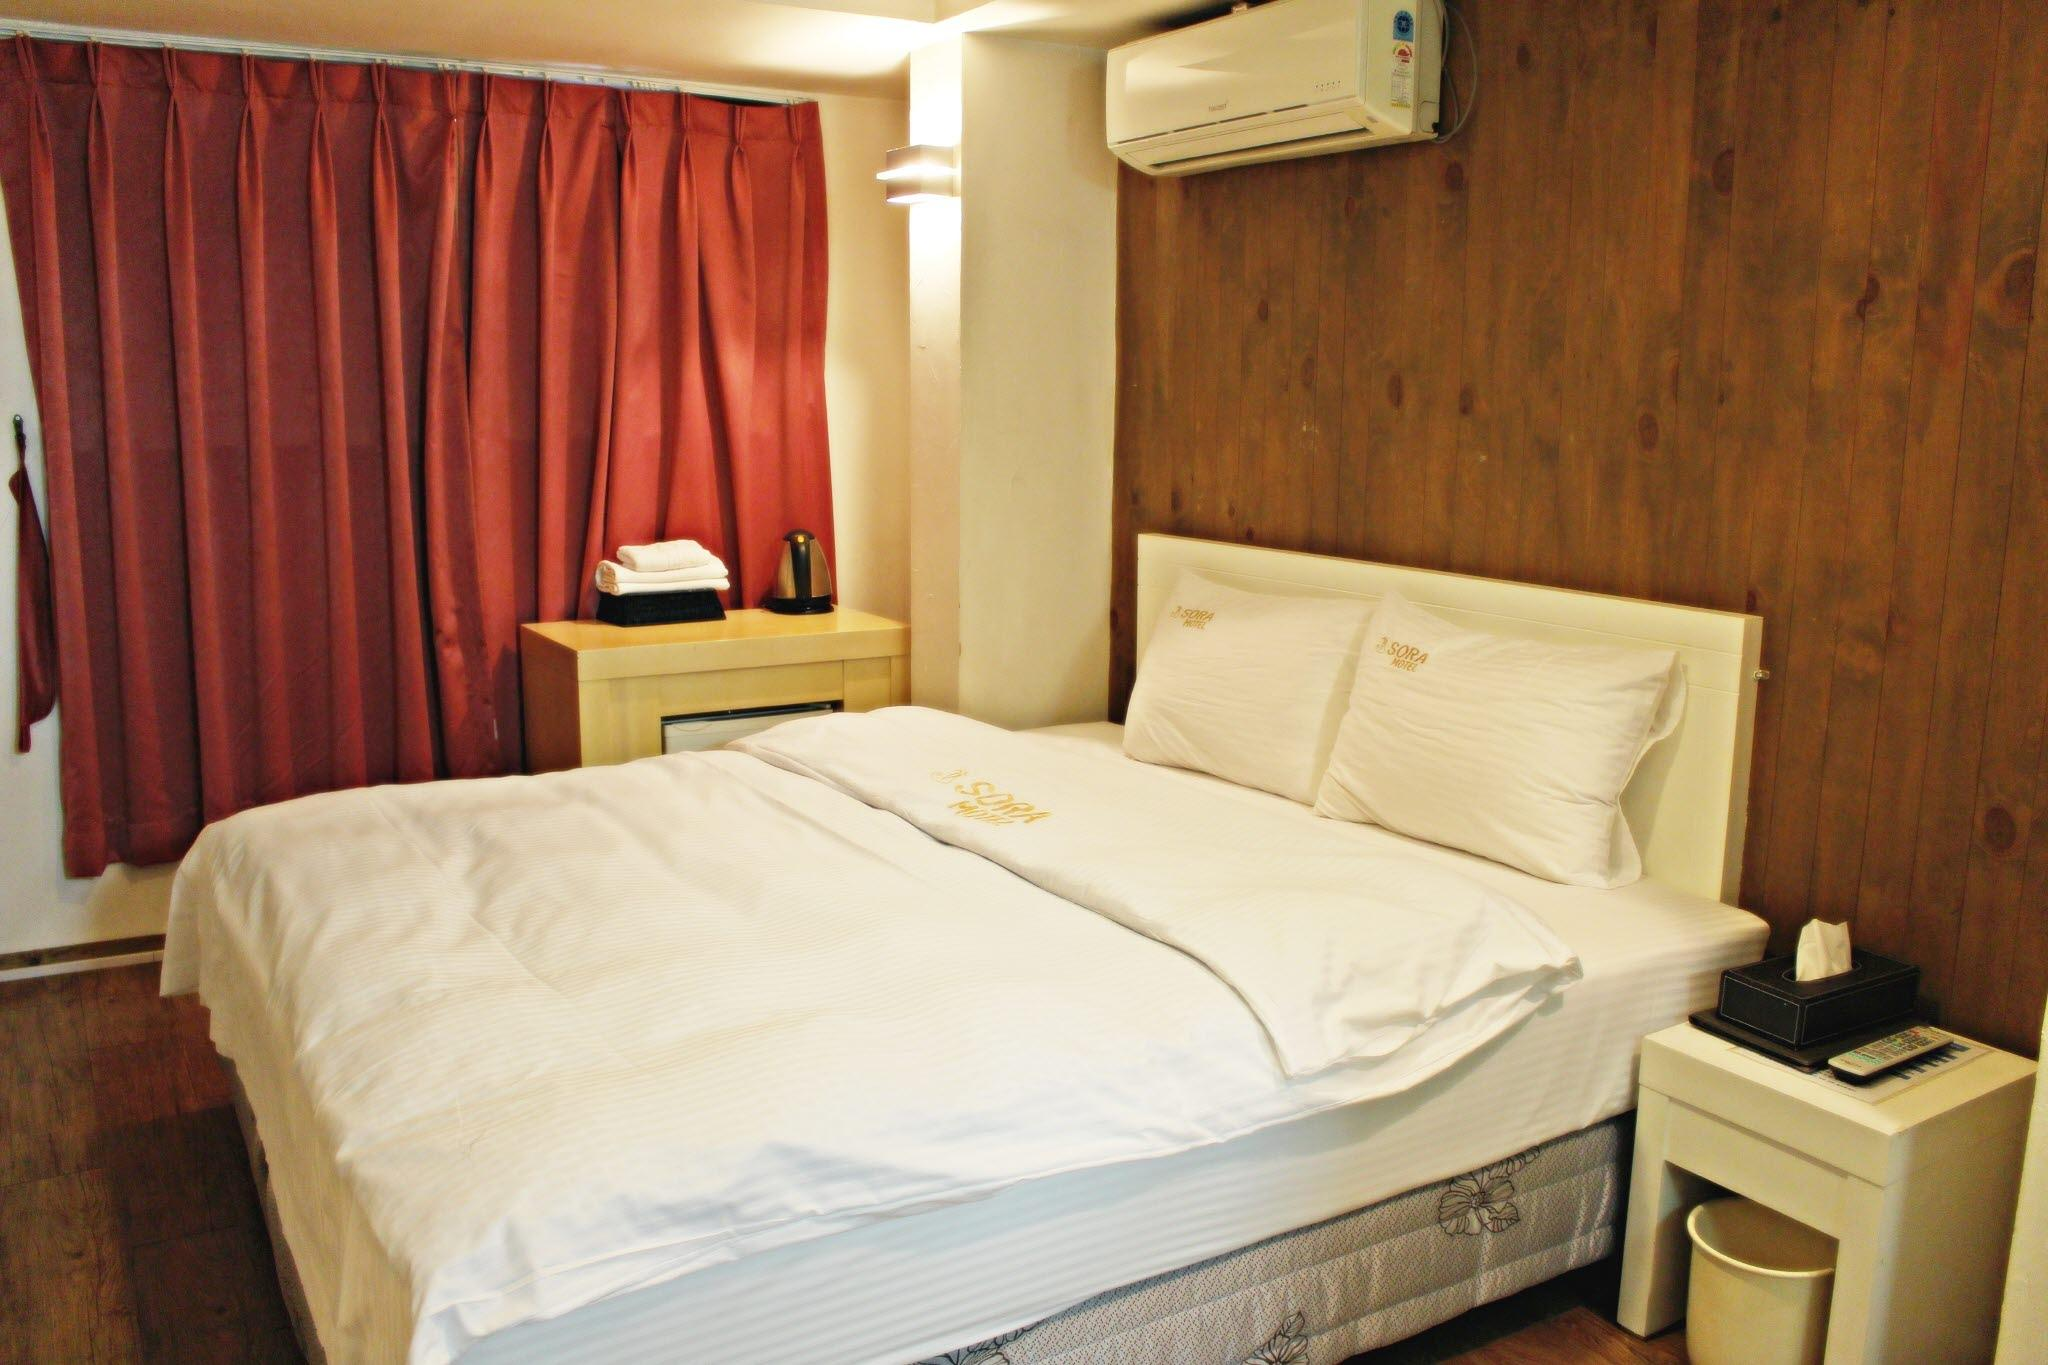 SORA Motel, Hotels Choices In Seoul South Korea - The Asia Hotels Booking Online